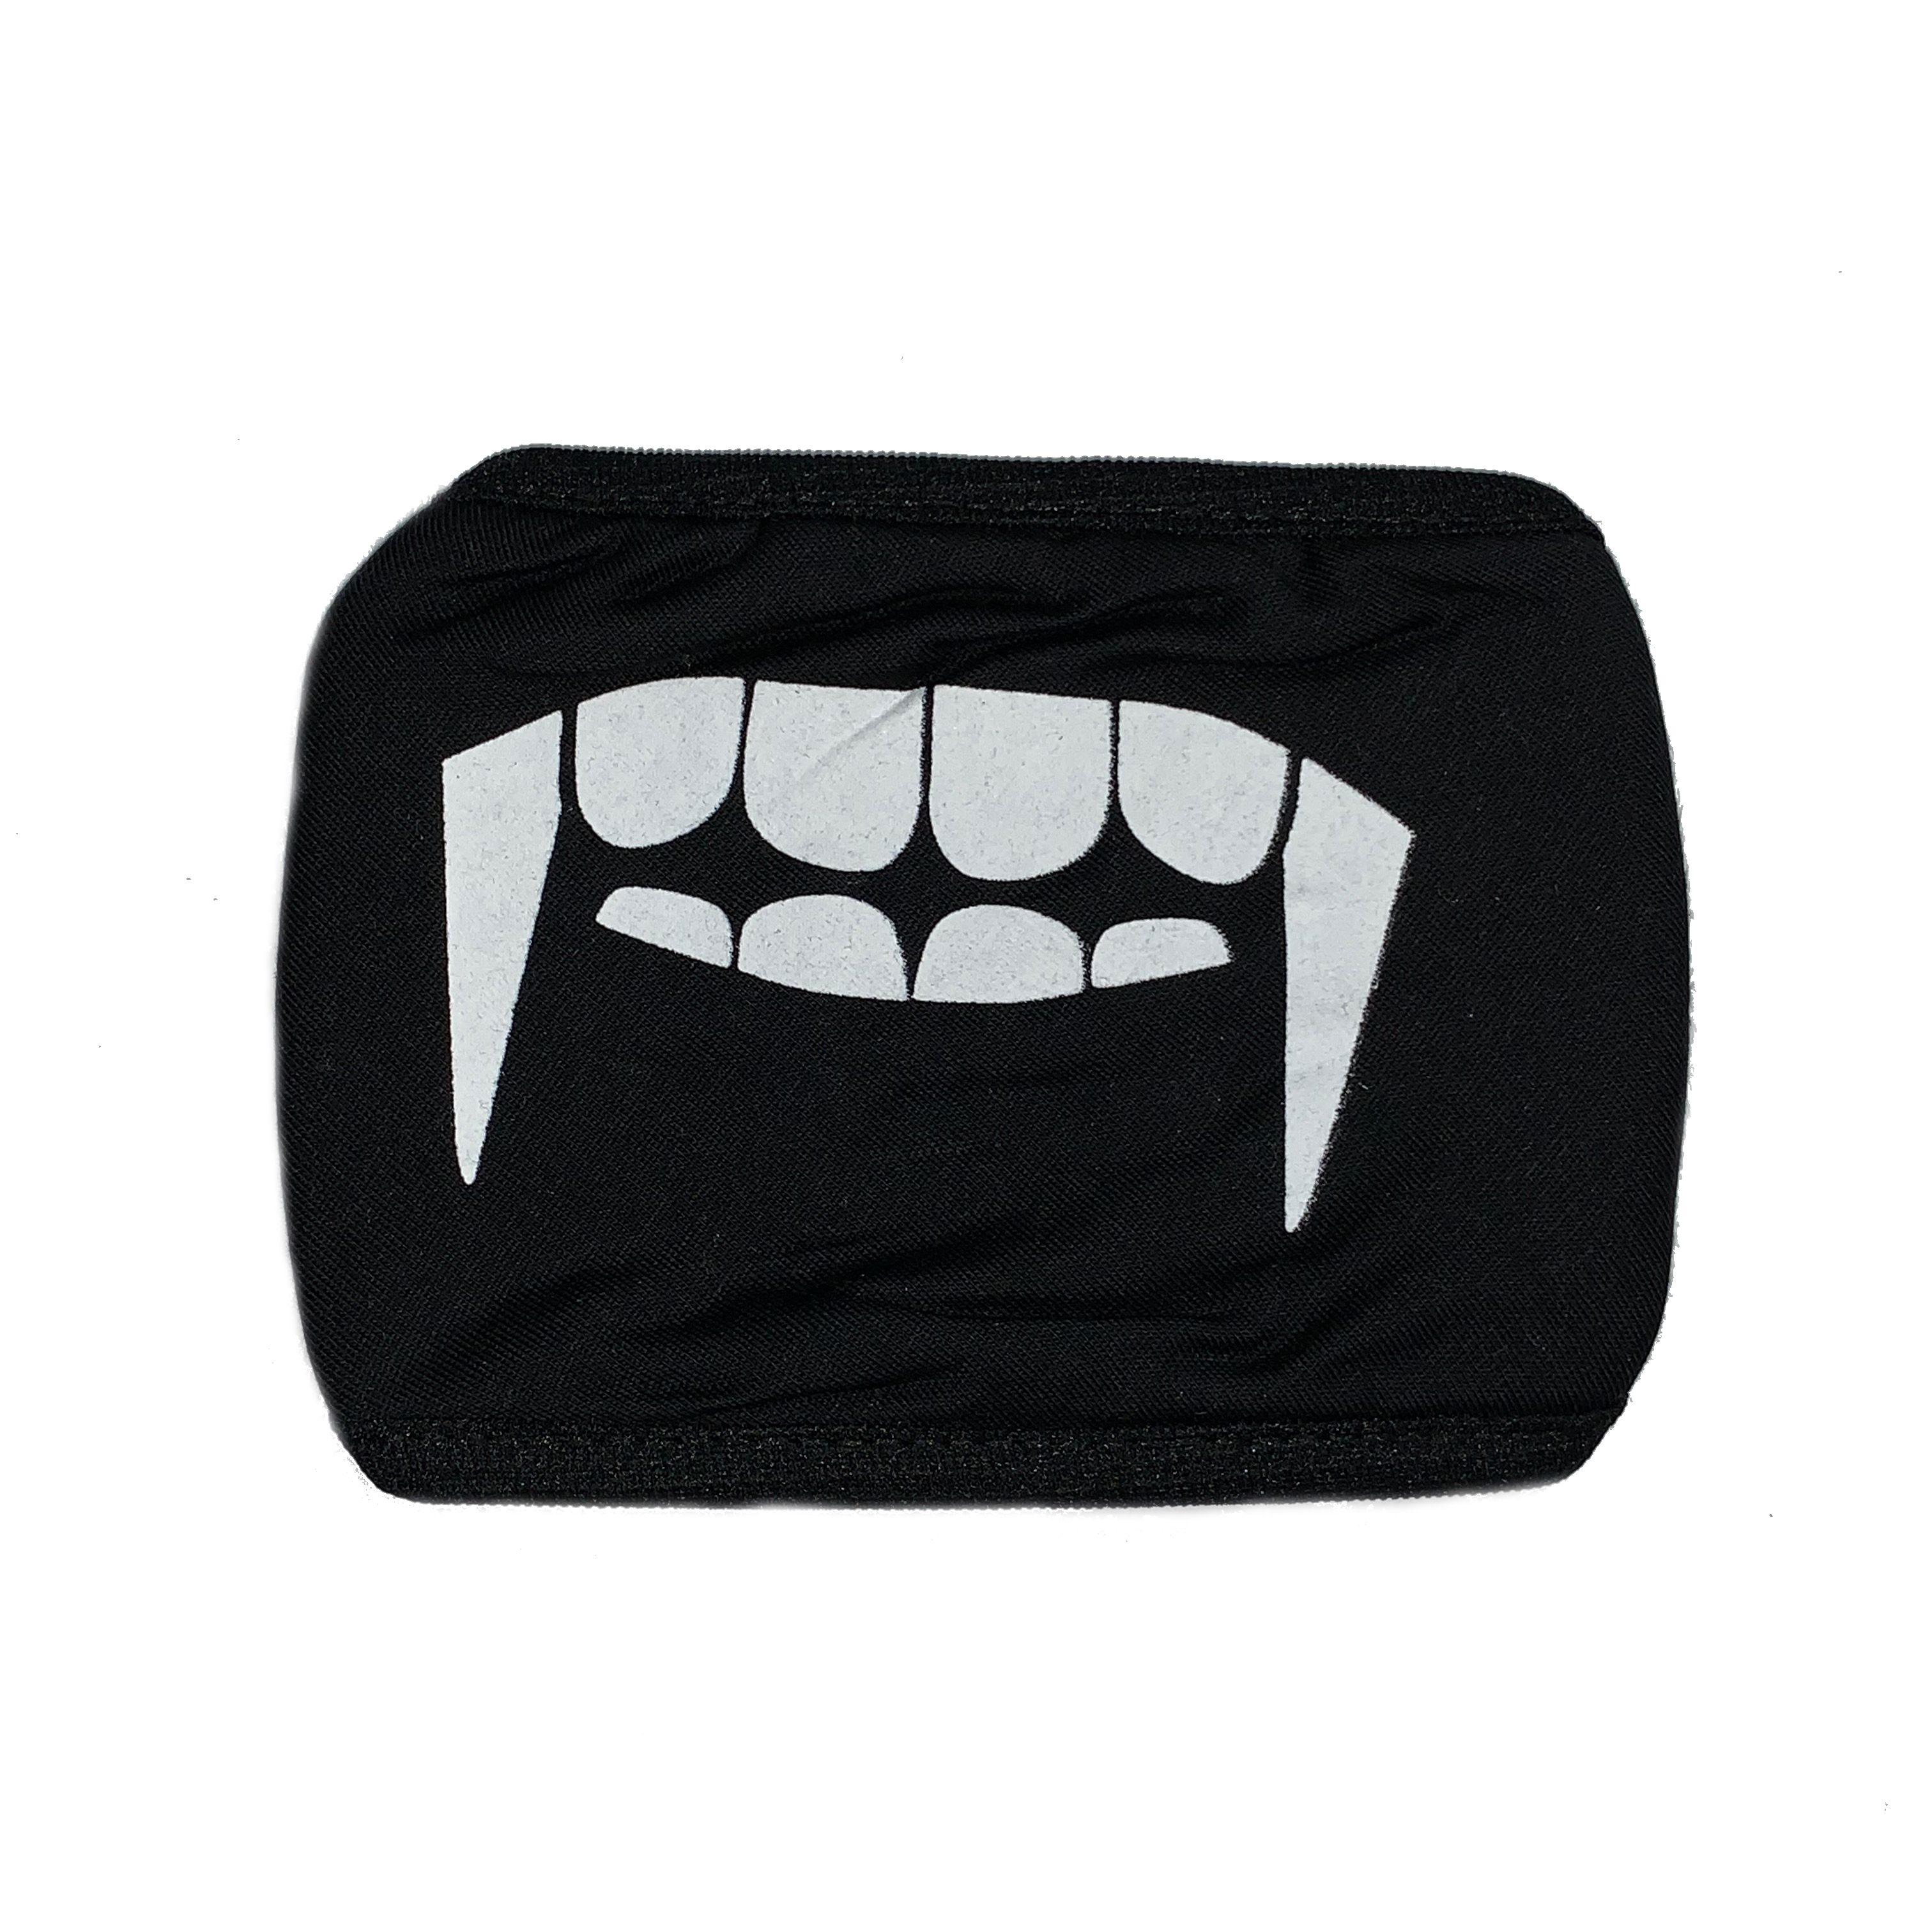 Cosplay Mask Face Mouth Mask Anime Vampire Black One Size Fits Most